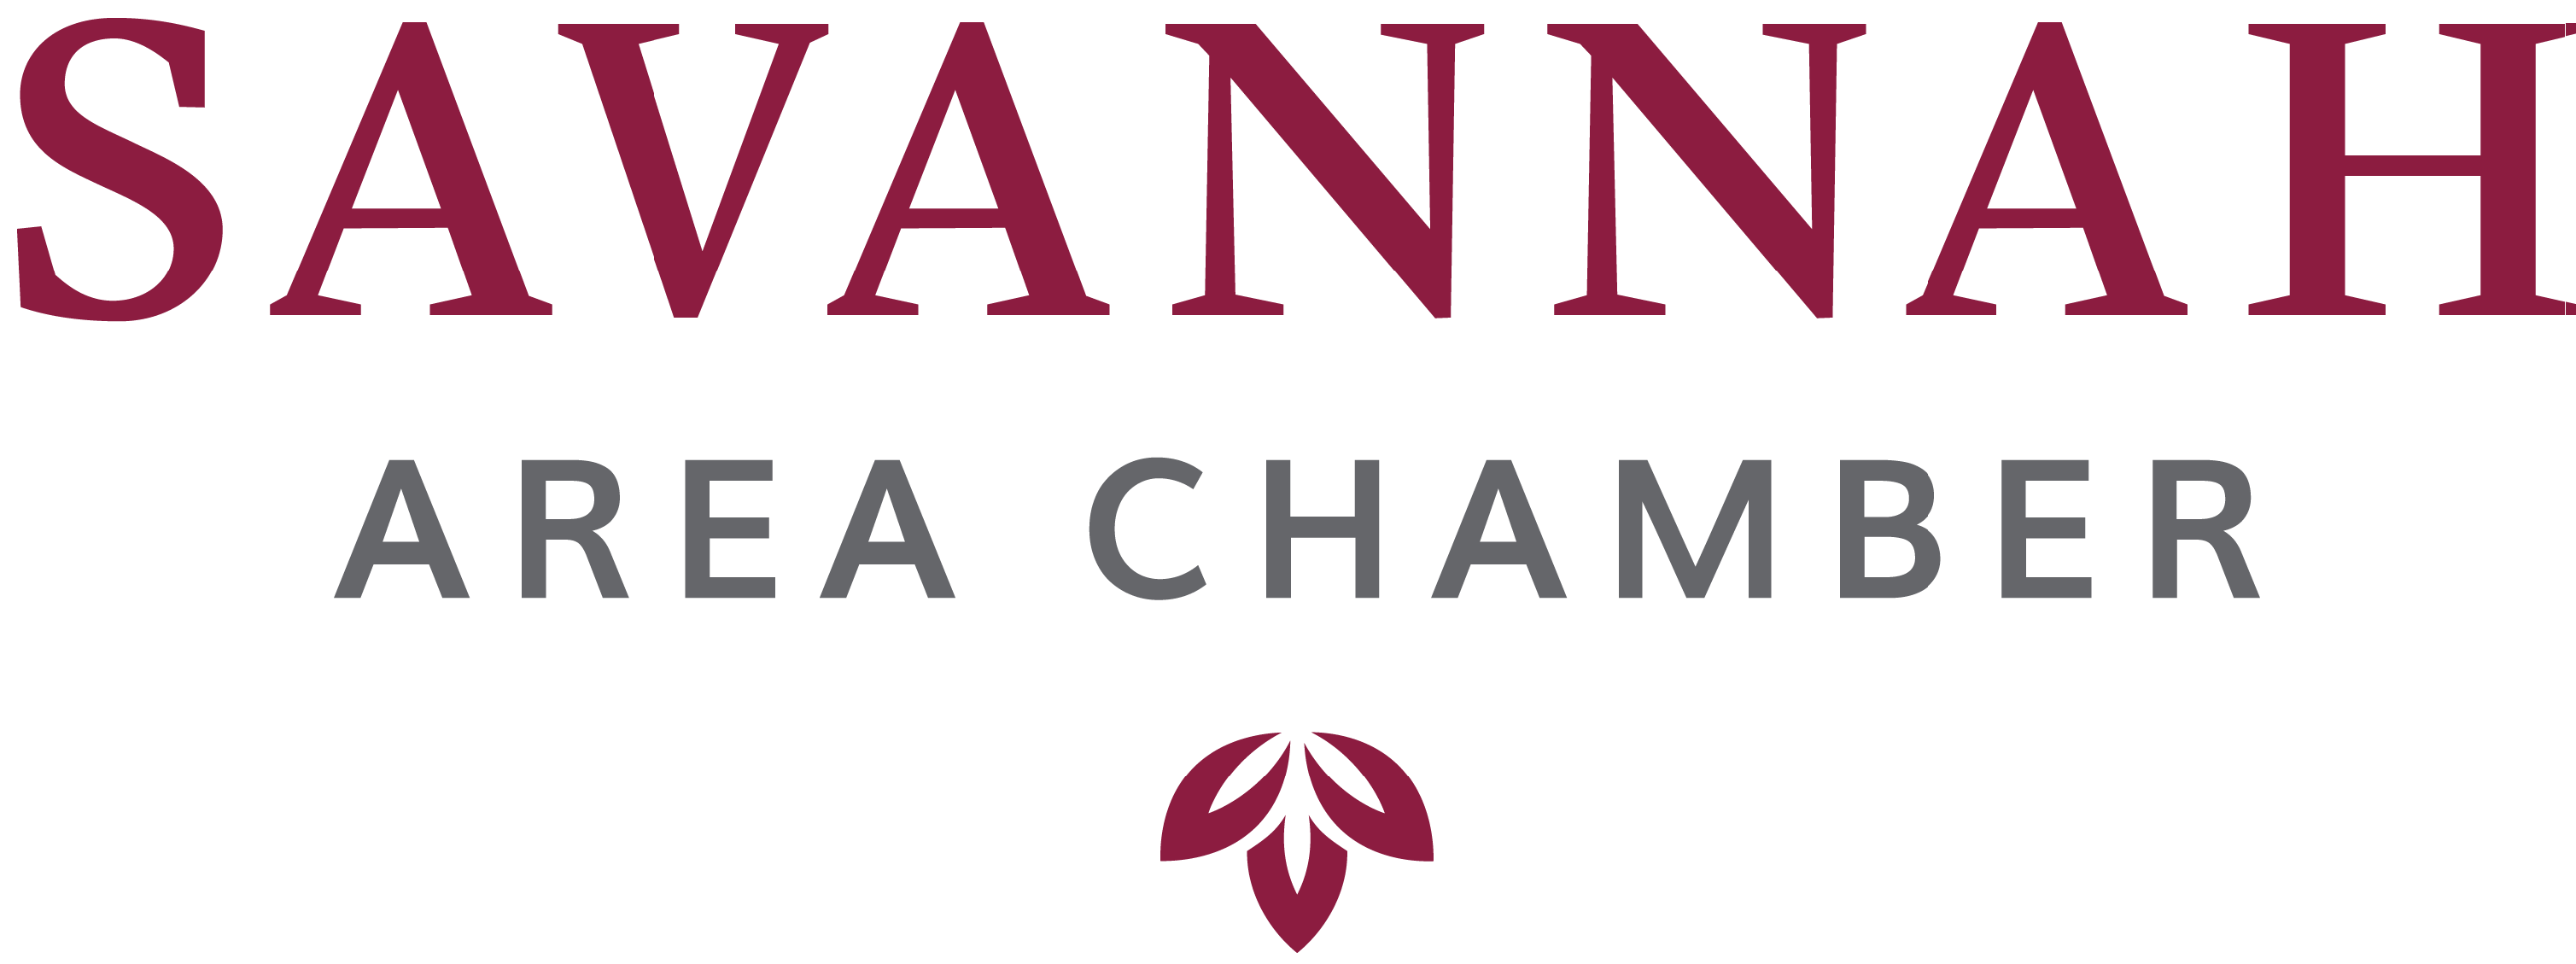 Savannah Area Chamber